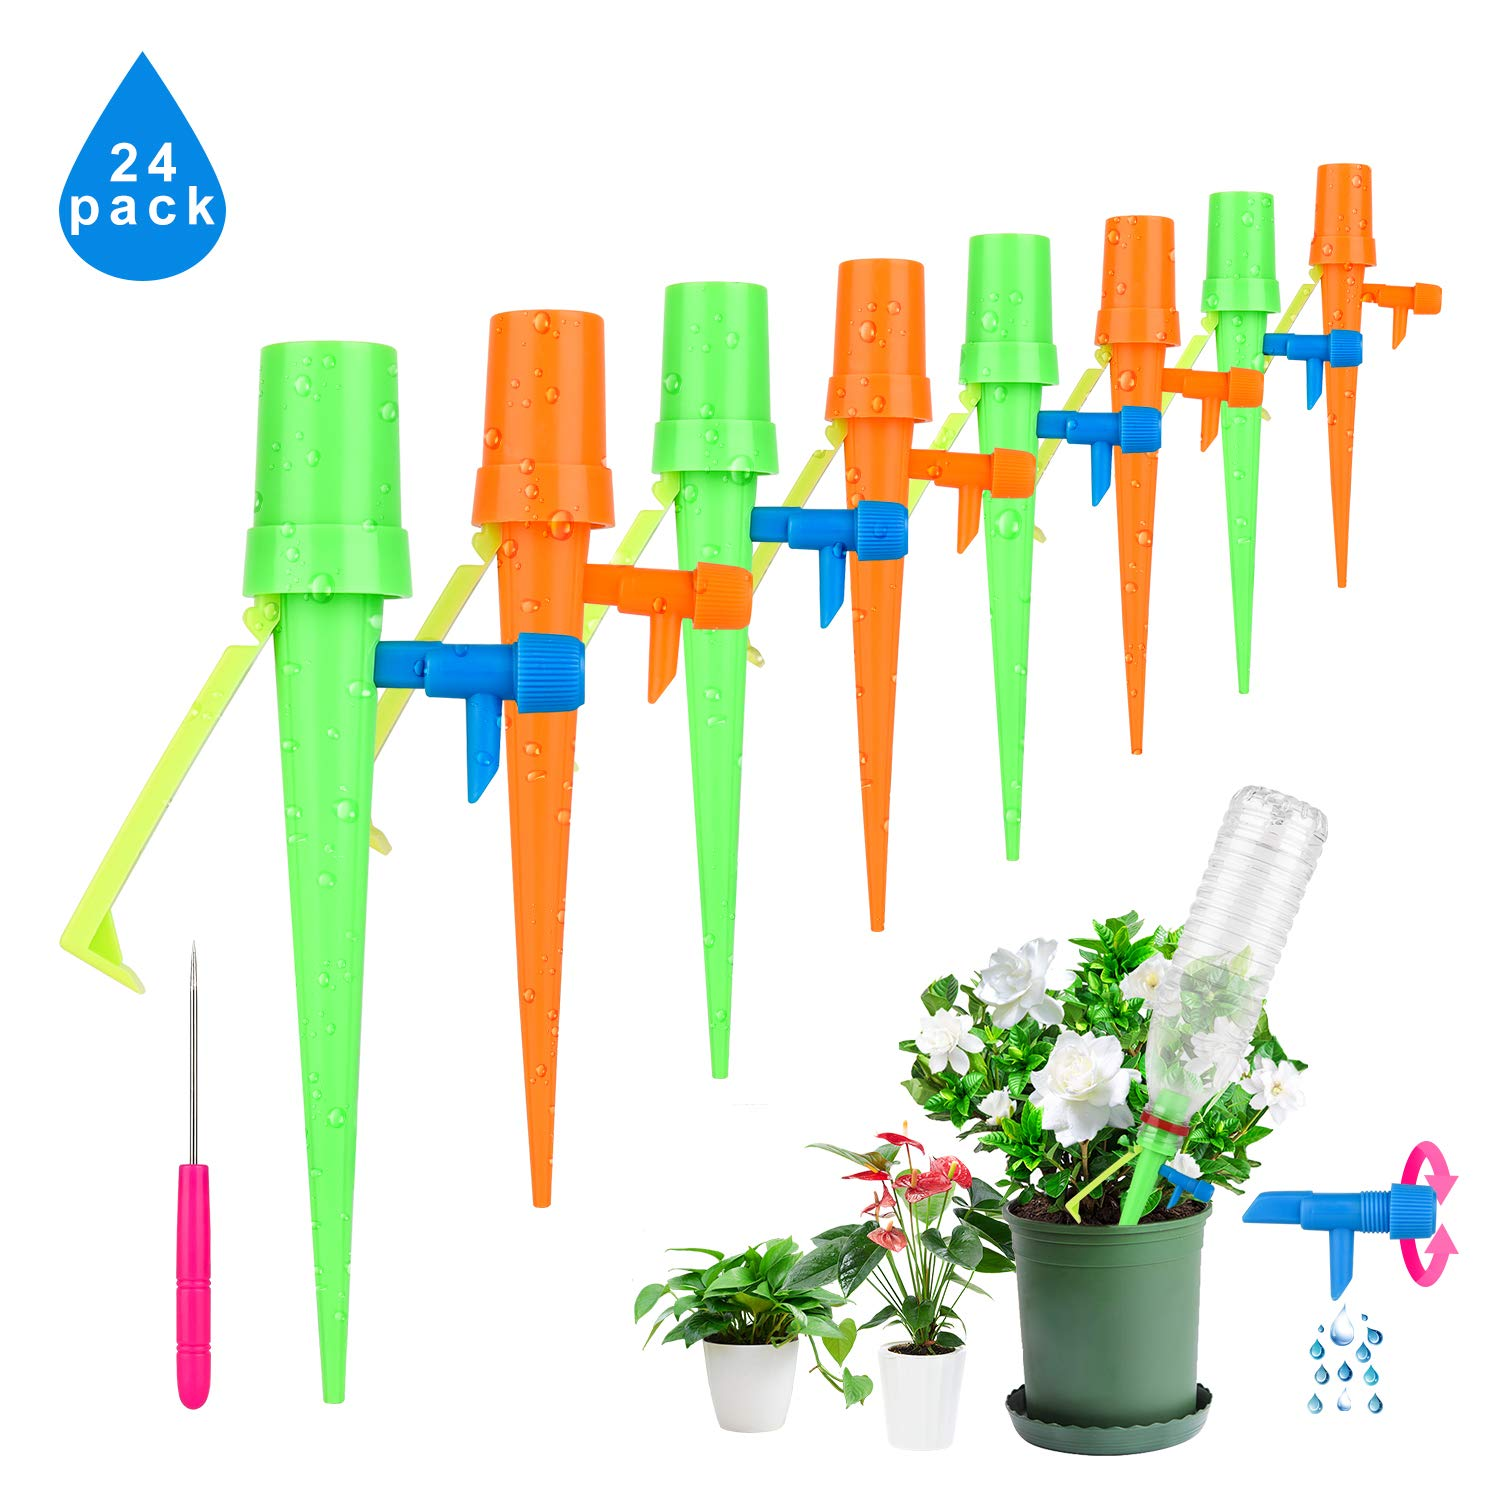 Plant Watering Spikes 24-Pack Upgraded Self Watering Devices with Control Valve Switch, Automatic Plant Waterer Vacation Drip Irrigation Water Stakes for Indoor & Outdoor, Fit for All Most Bottles